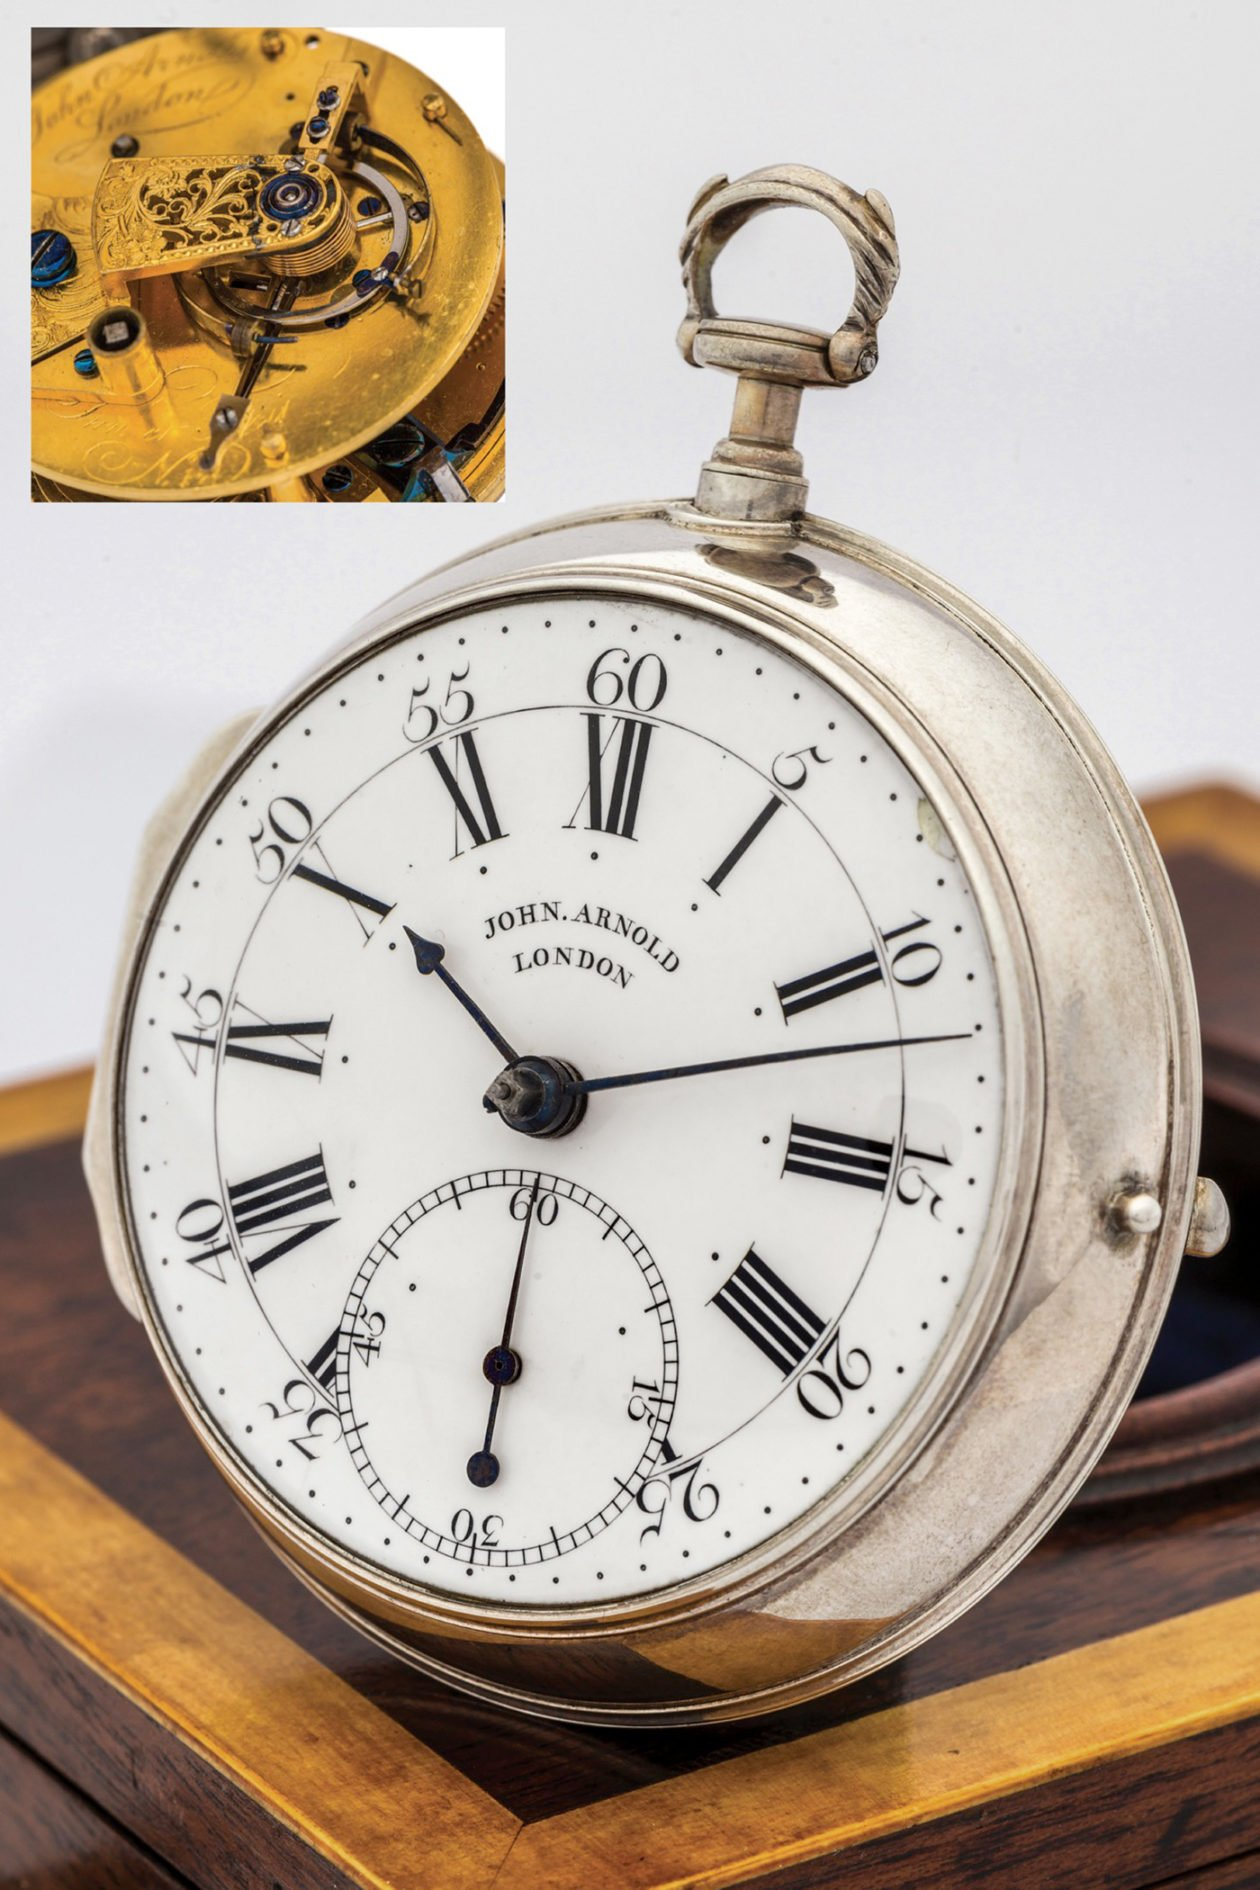 John Arnold, No. 17 / foto: Antiquorum